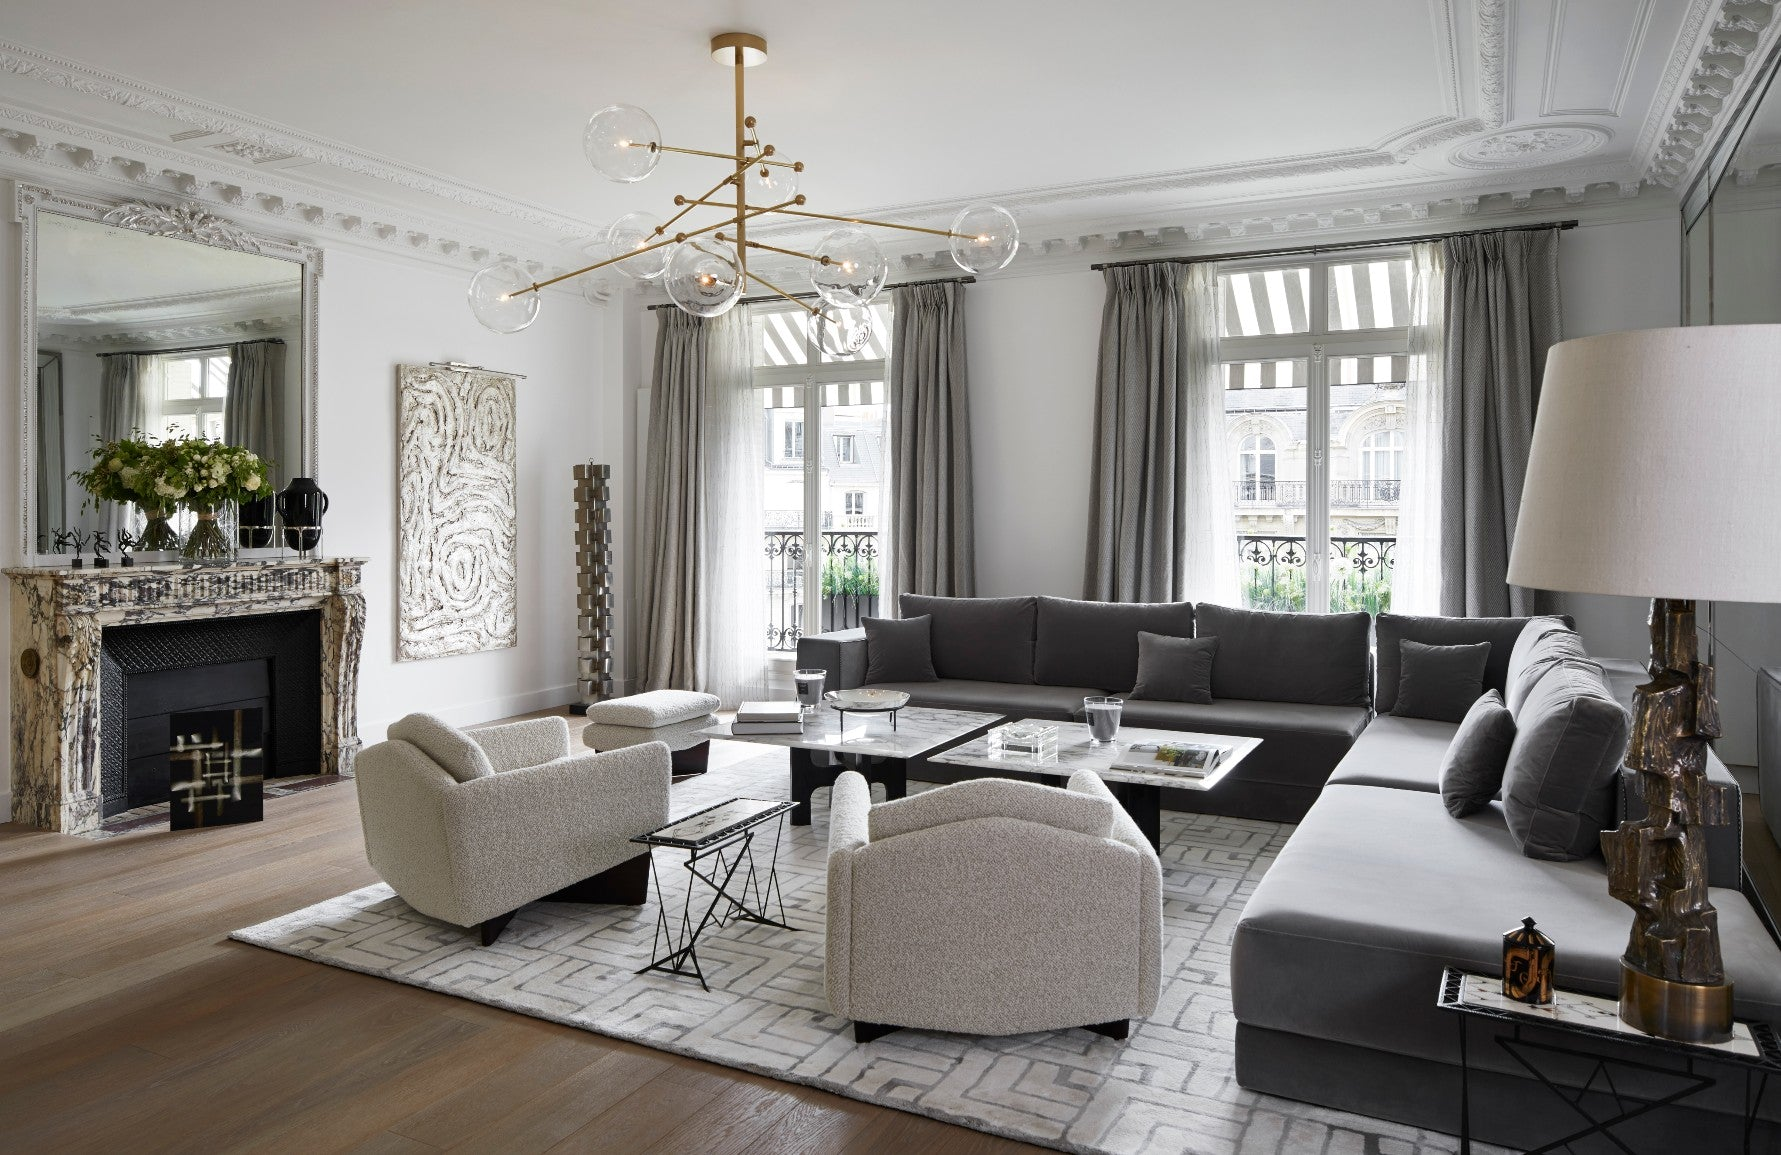 Natalia Miyar | Luxury Interior Design | Neutral Living Rooms | Read more in the LuxDeco.com Style Guide